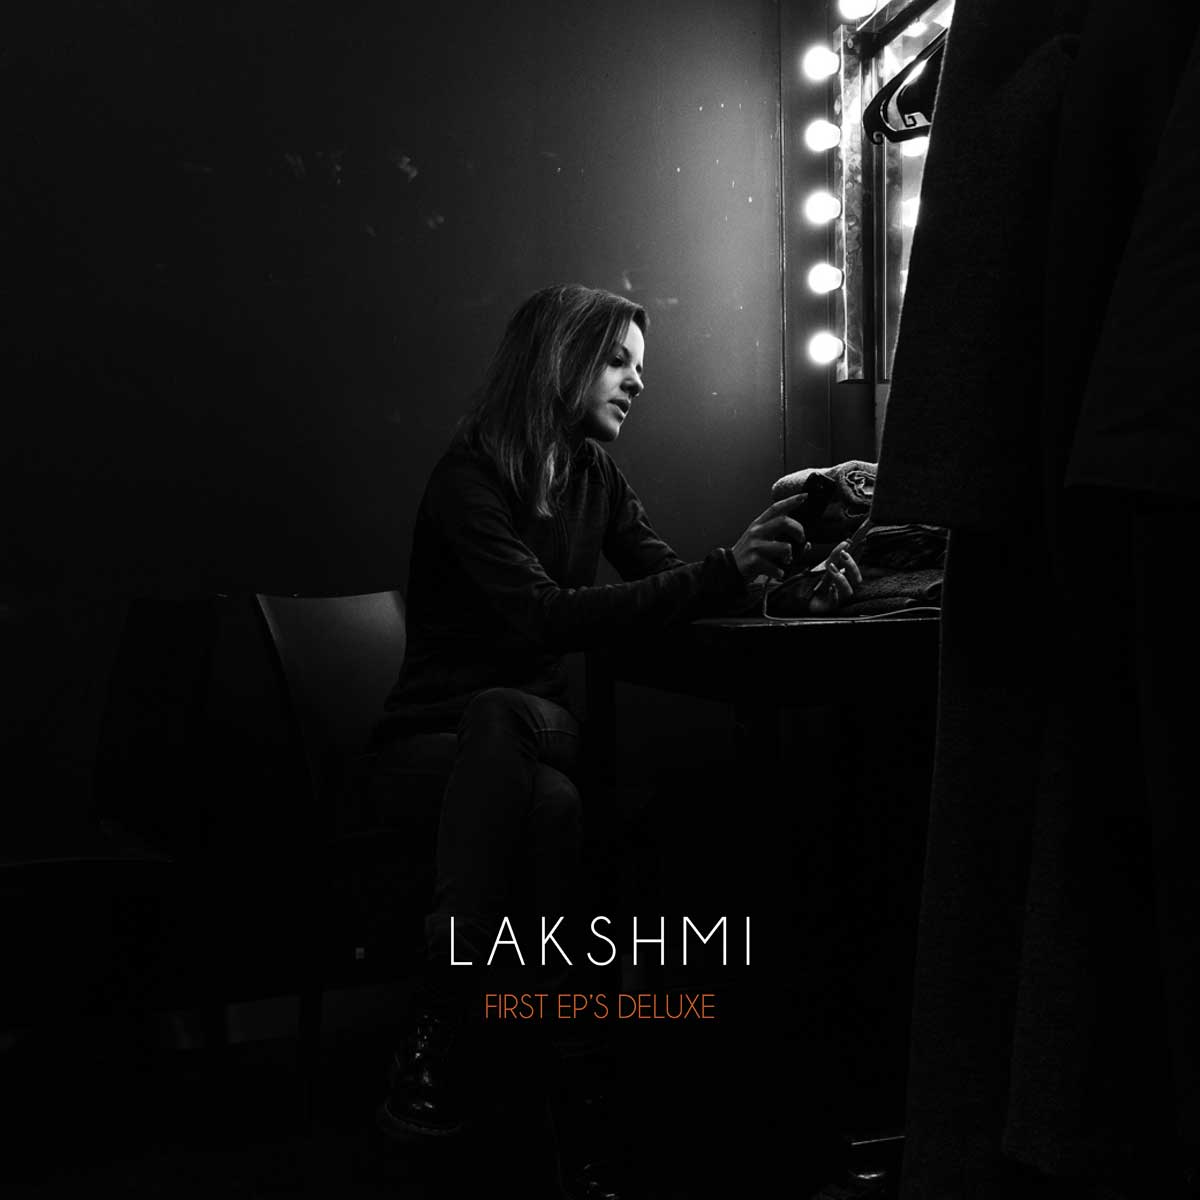 LAKSHMI - First EP's Deluxe